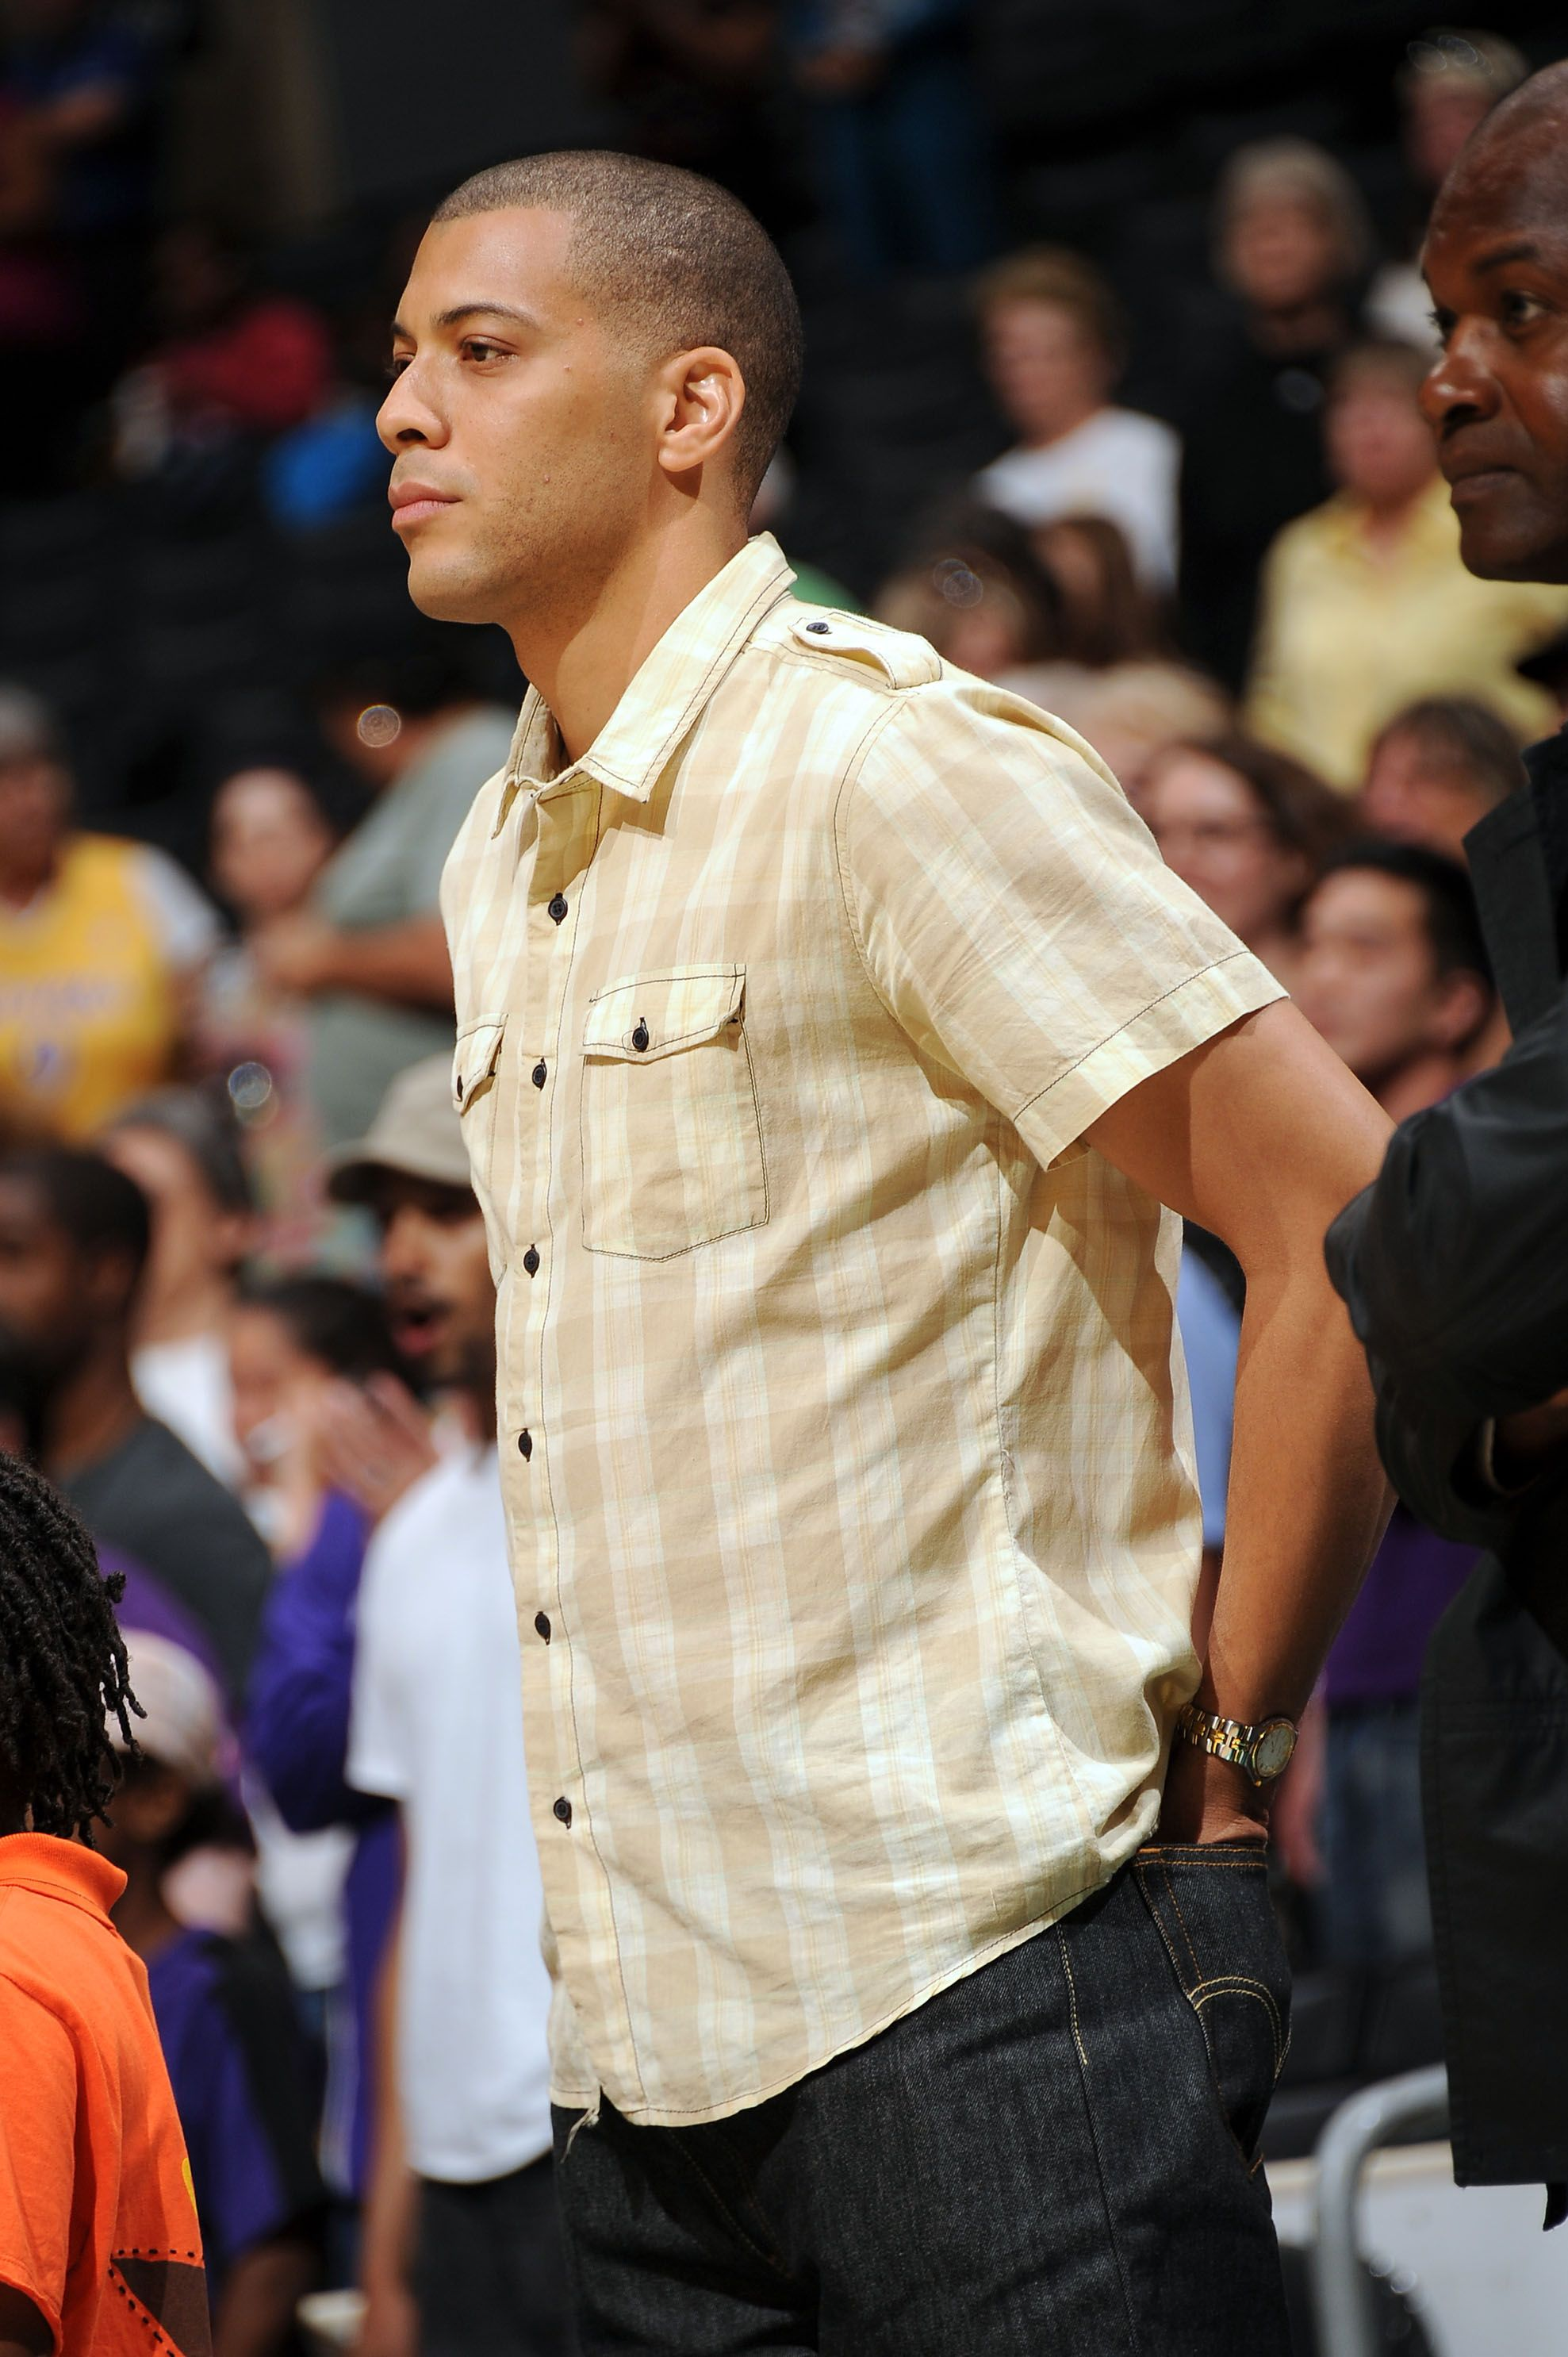 Anthony Parker at a Sparks game supporting Candace Parker